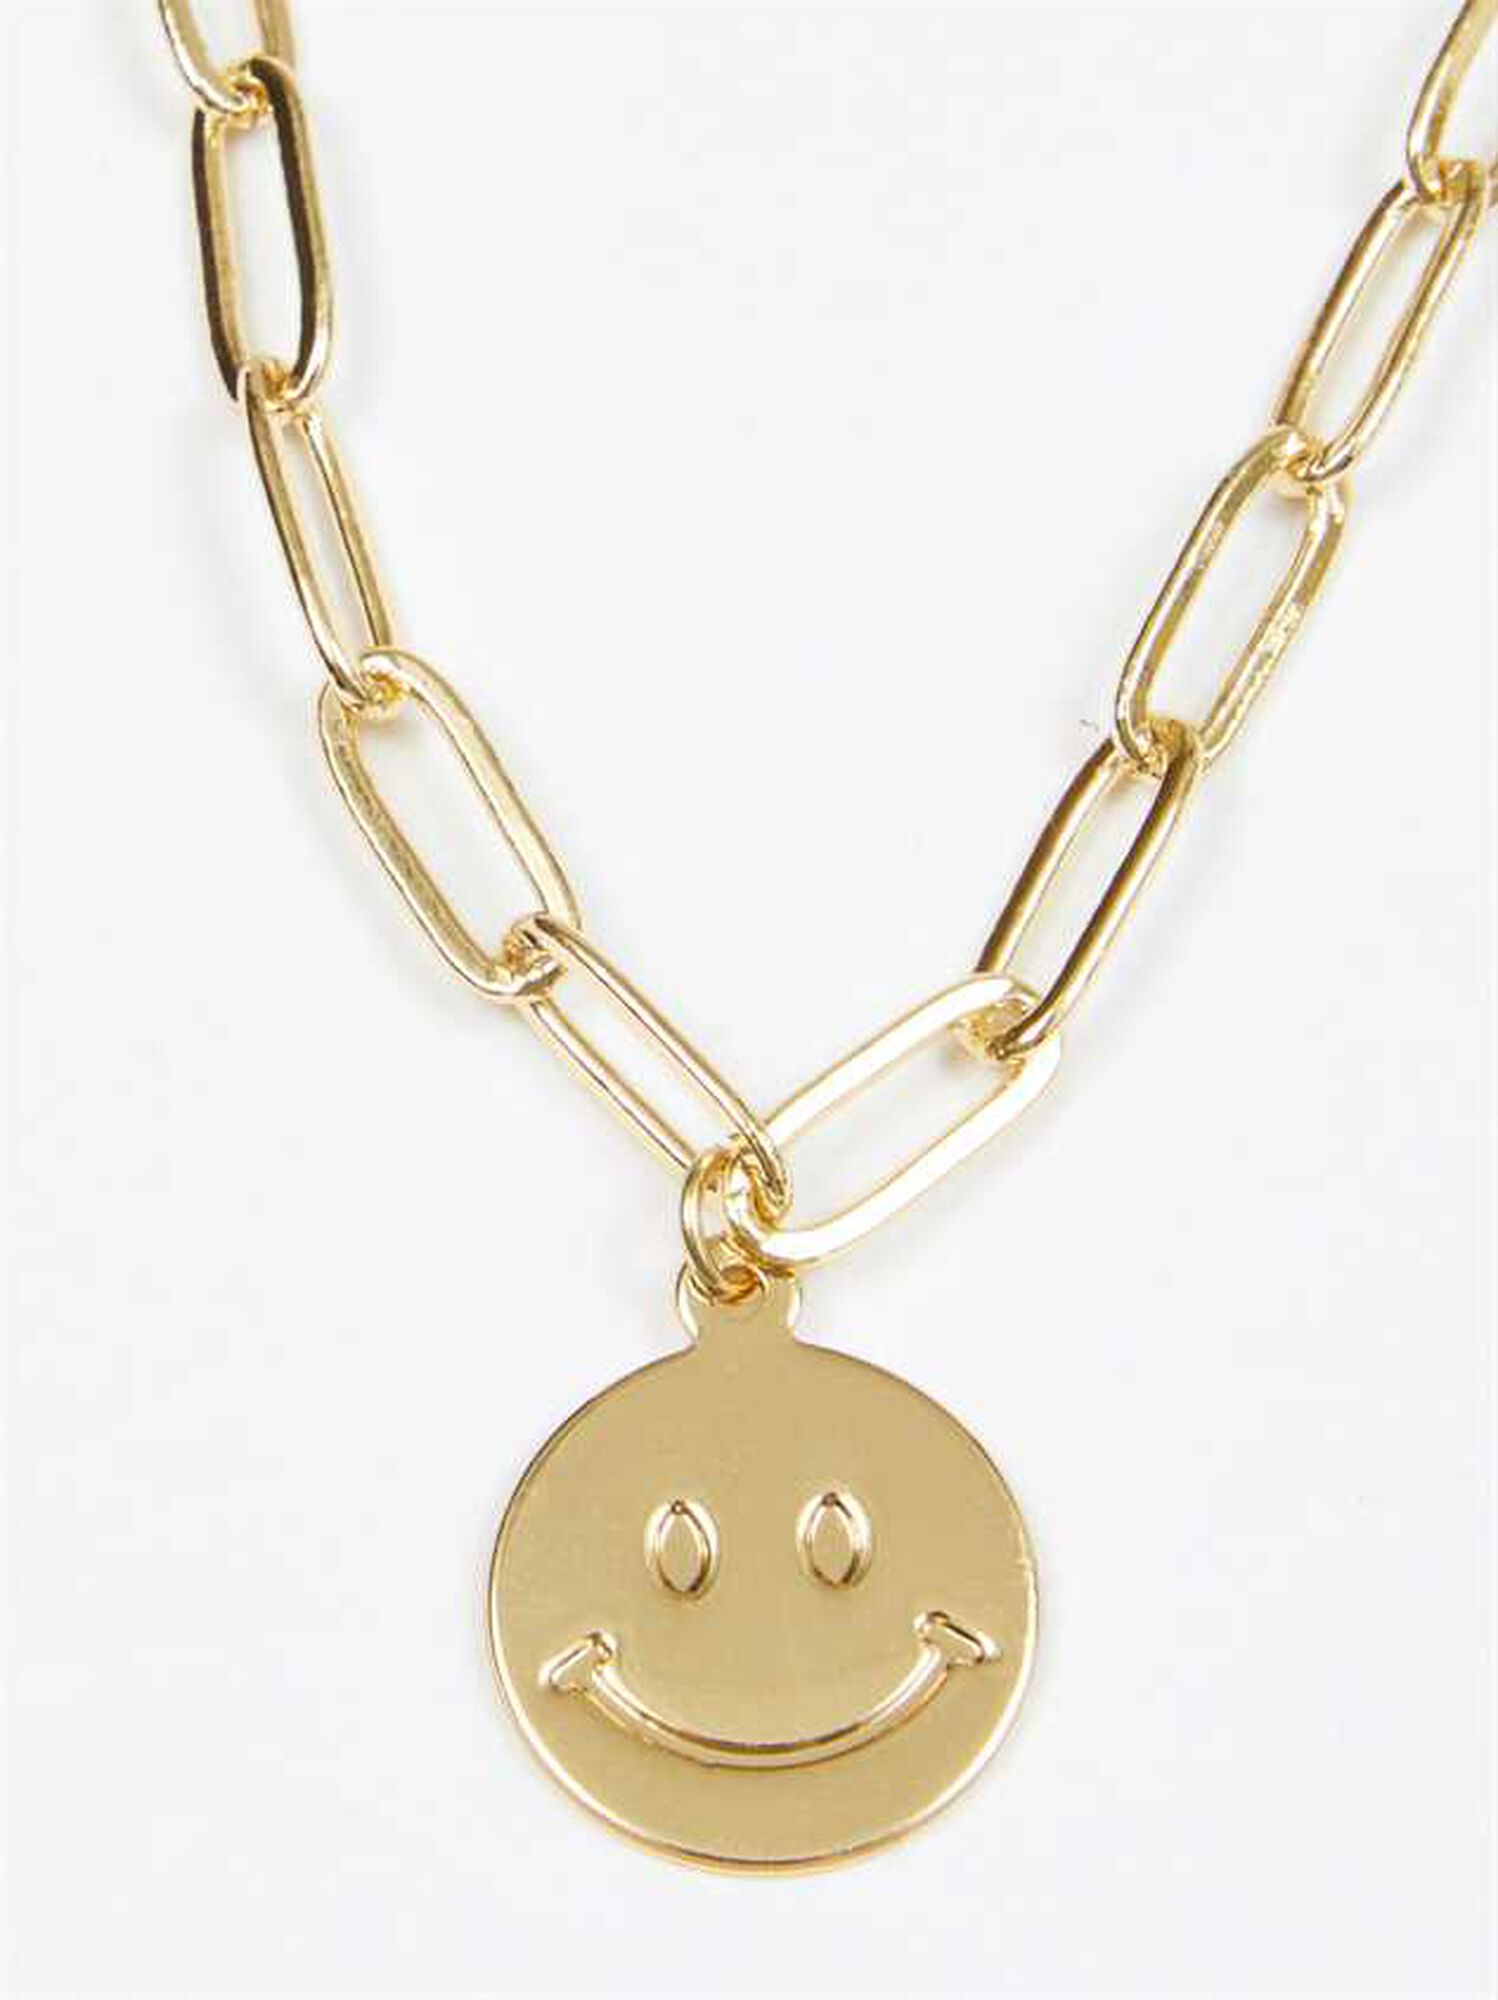 The Smiley Chain